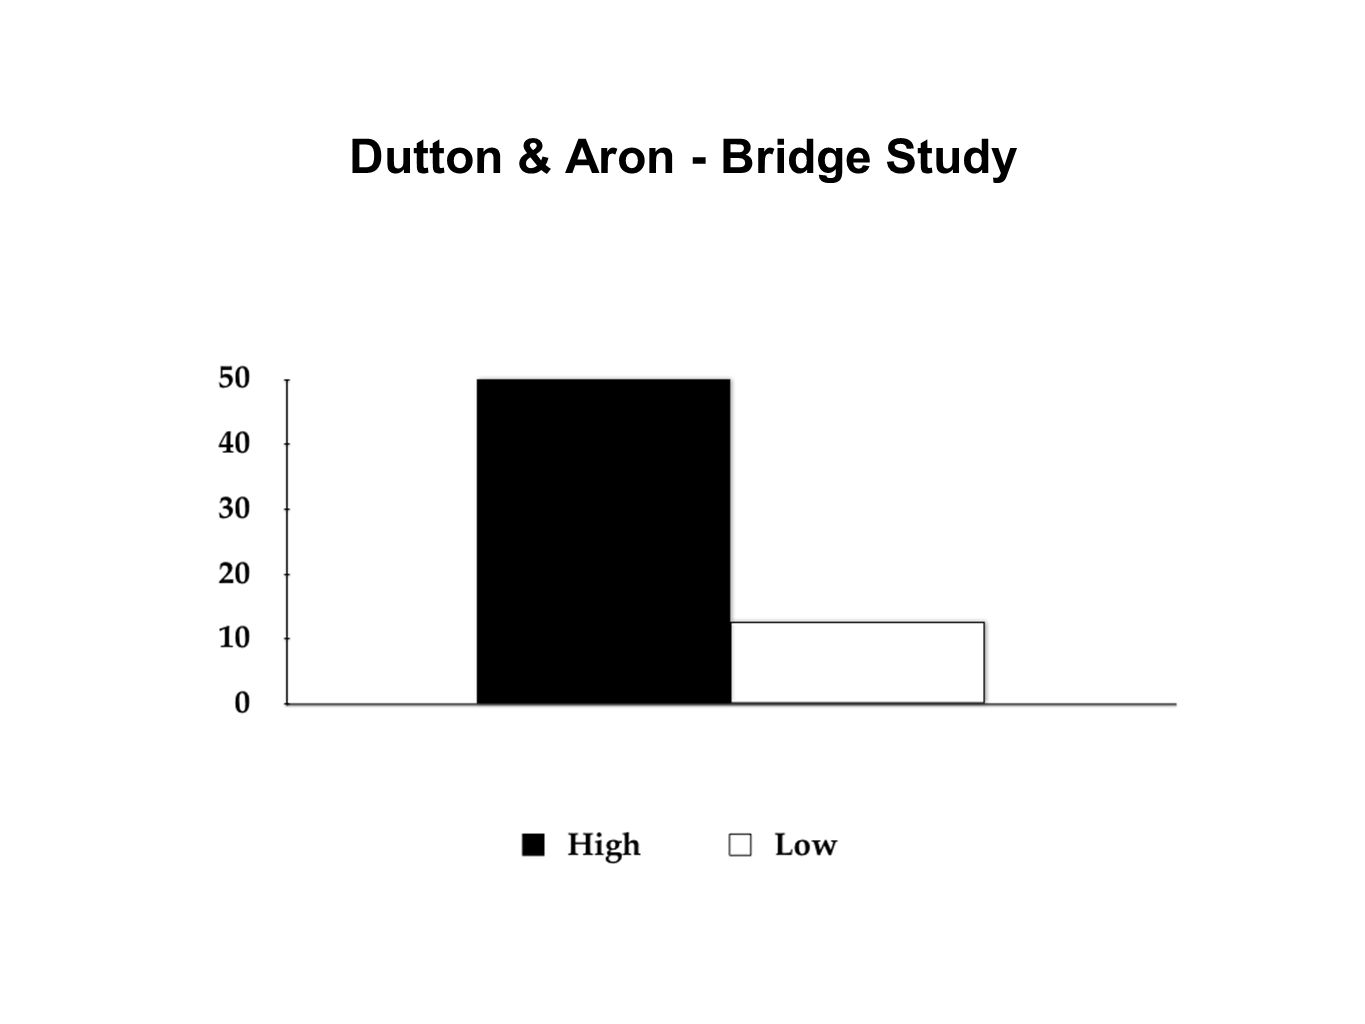 Dutton & Aron - Bridge Study